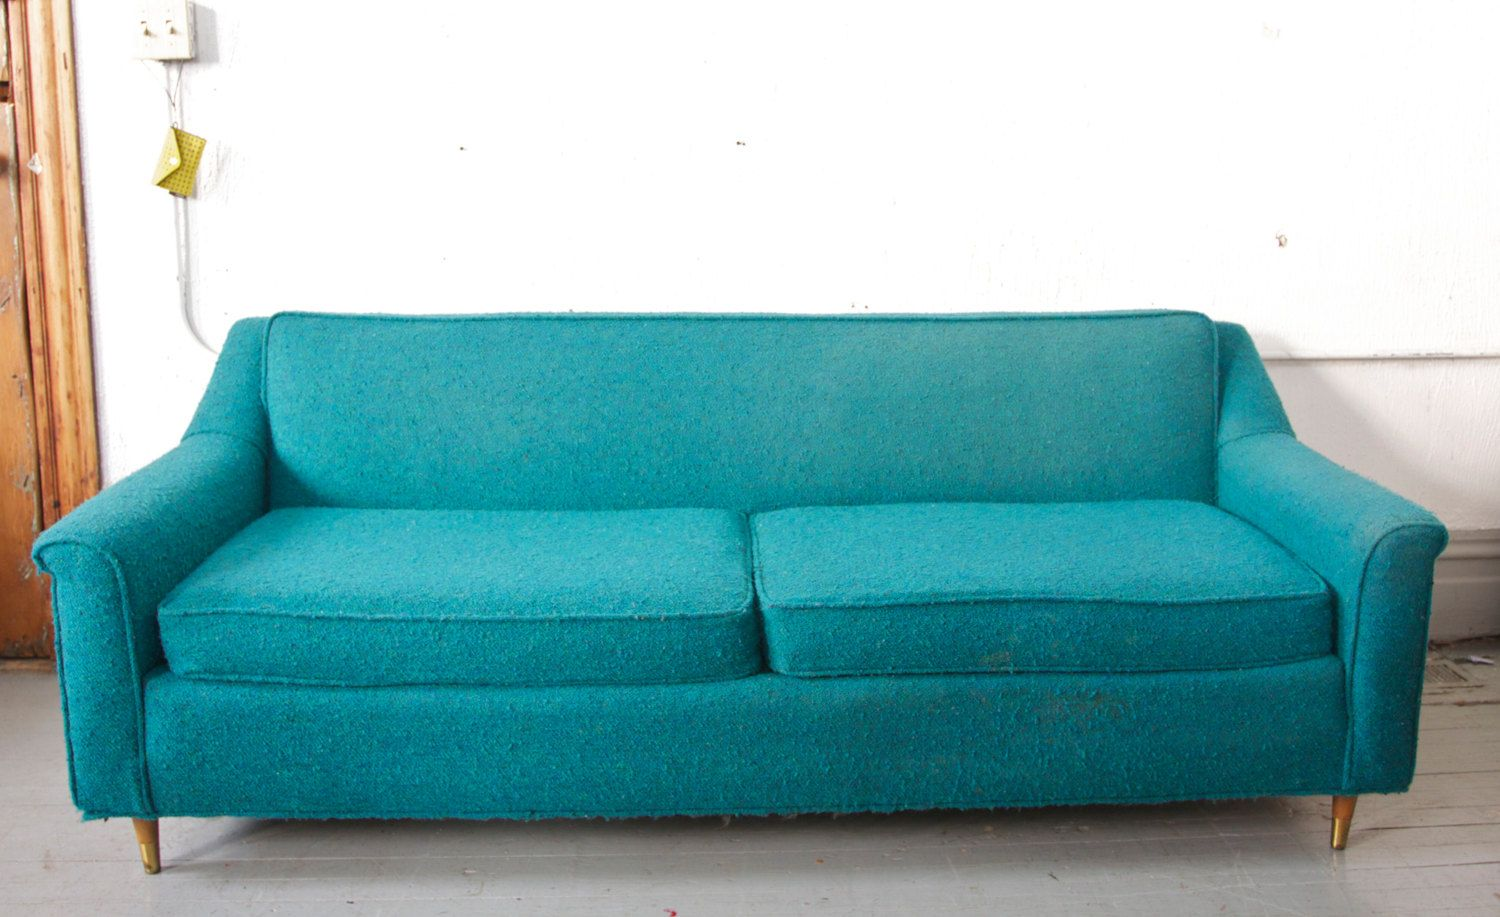 Best Place To Buy A Couch In 2020 Midcentury Modern Mid Century